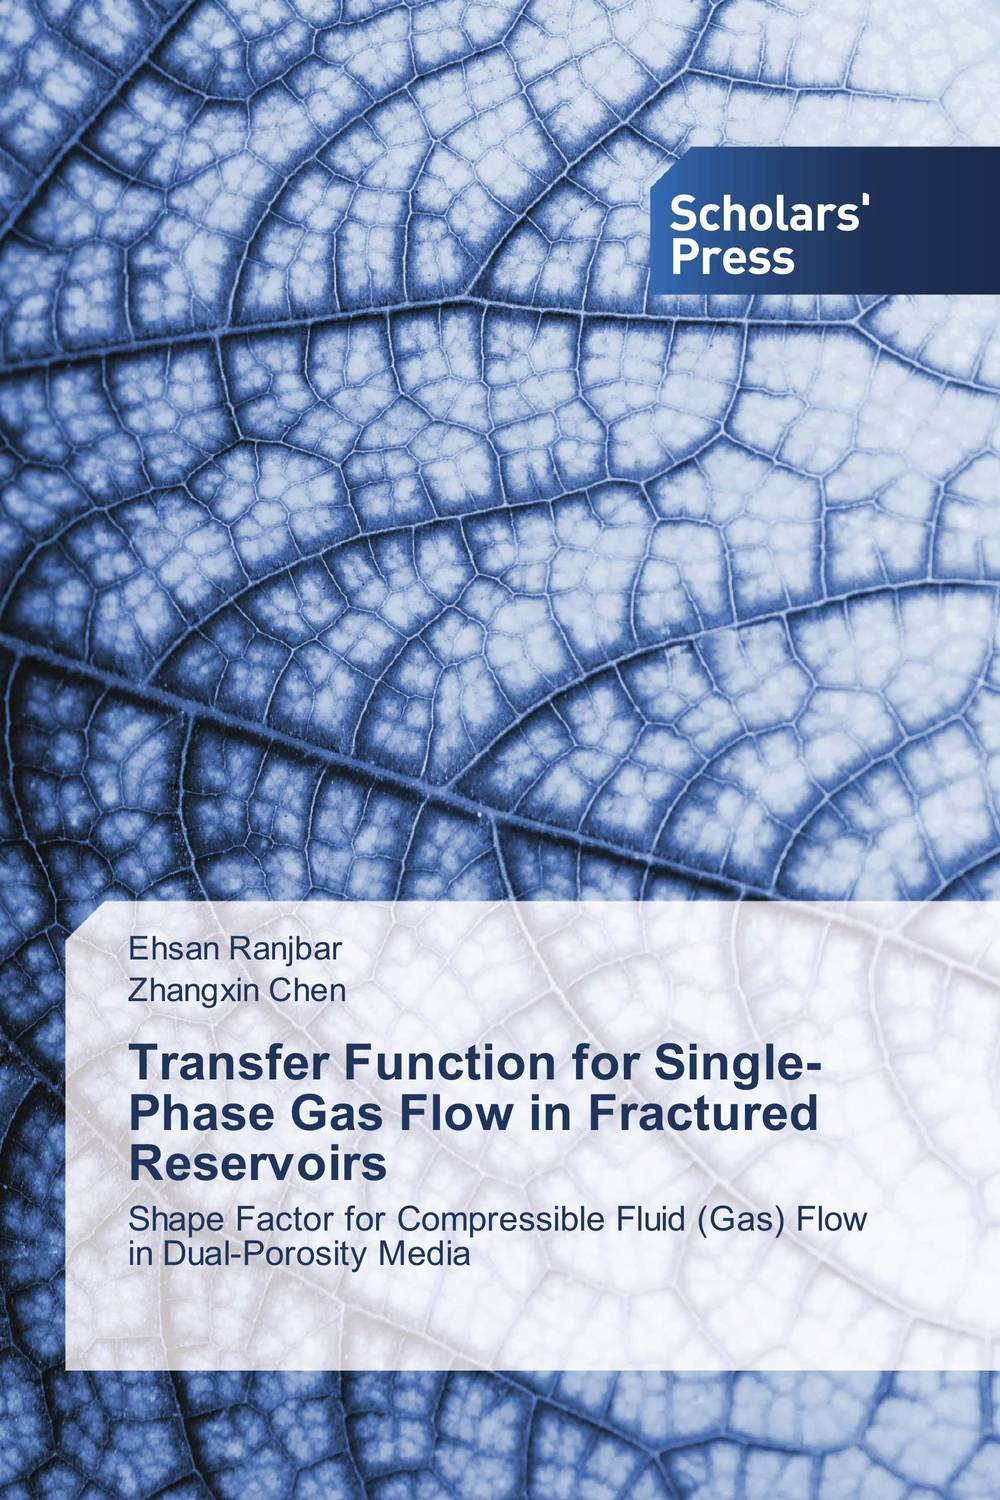 Transfer Function for Single-Phase Gas Flow in Fractured Reservoirs point systems migration policy and international students flow